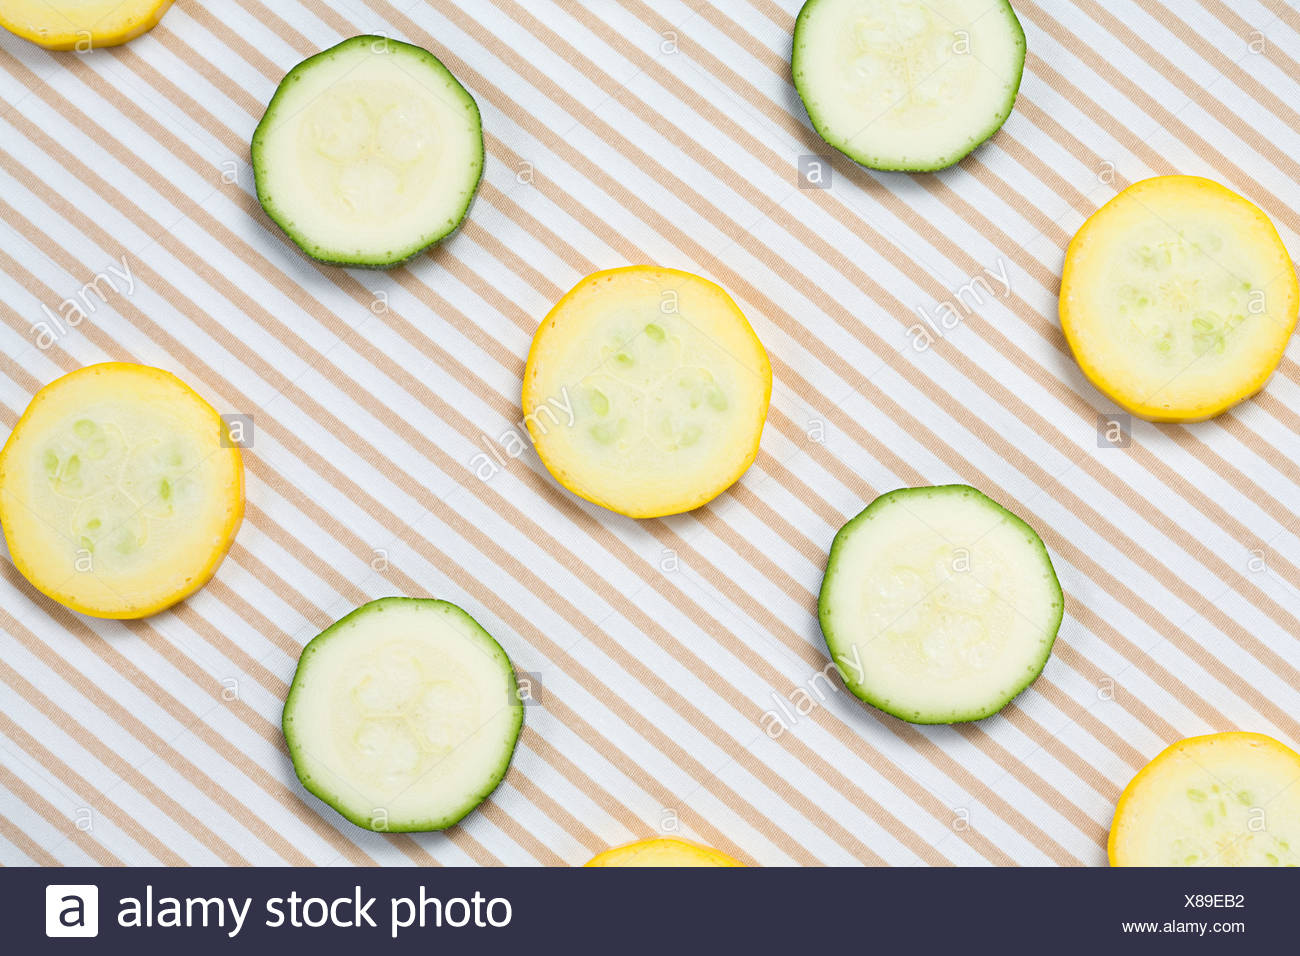 Slices of courgette - Stock Image